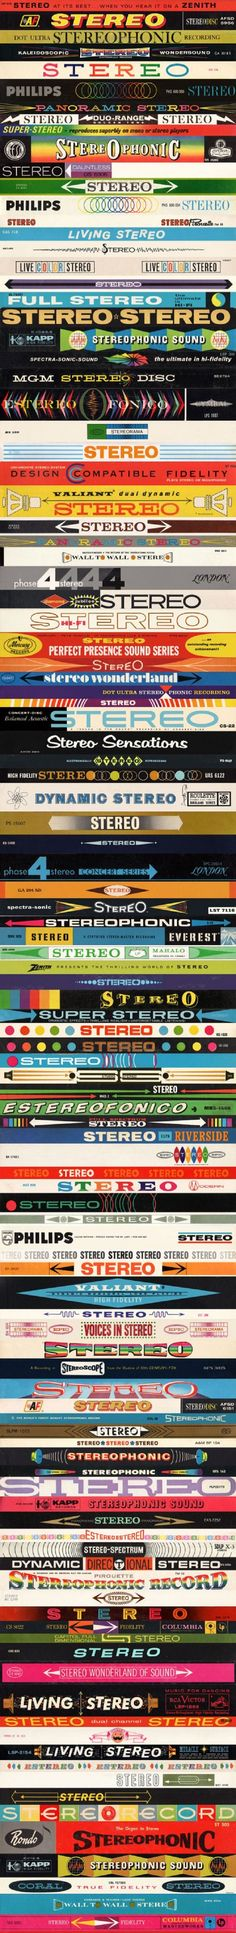 Vintage LP stereo banners stacked by Jive Time Records and Project Thirty-Three: Vinyl Music, Vinyl Records, Lp Vinyl, Record Label Logo, Lp Cover, Cover Art, Vinyl Junkies, Vintage Records, Album Design